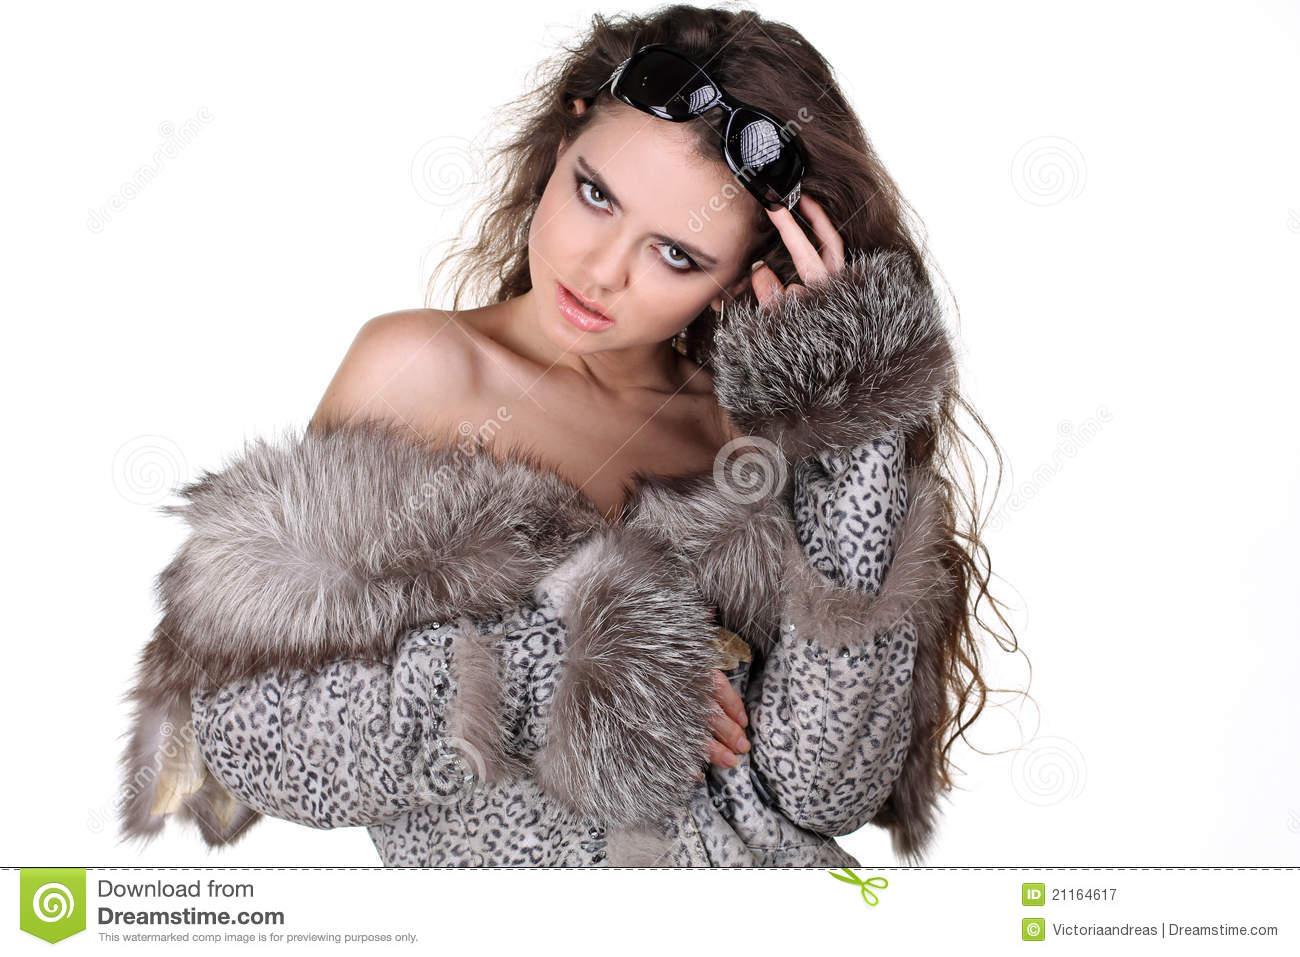 Glamorous Woman In Fox Fur Coat With Sunglasses Royalty Free Stock ...